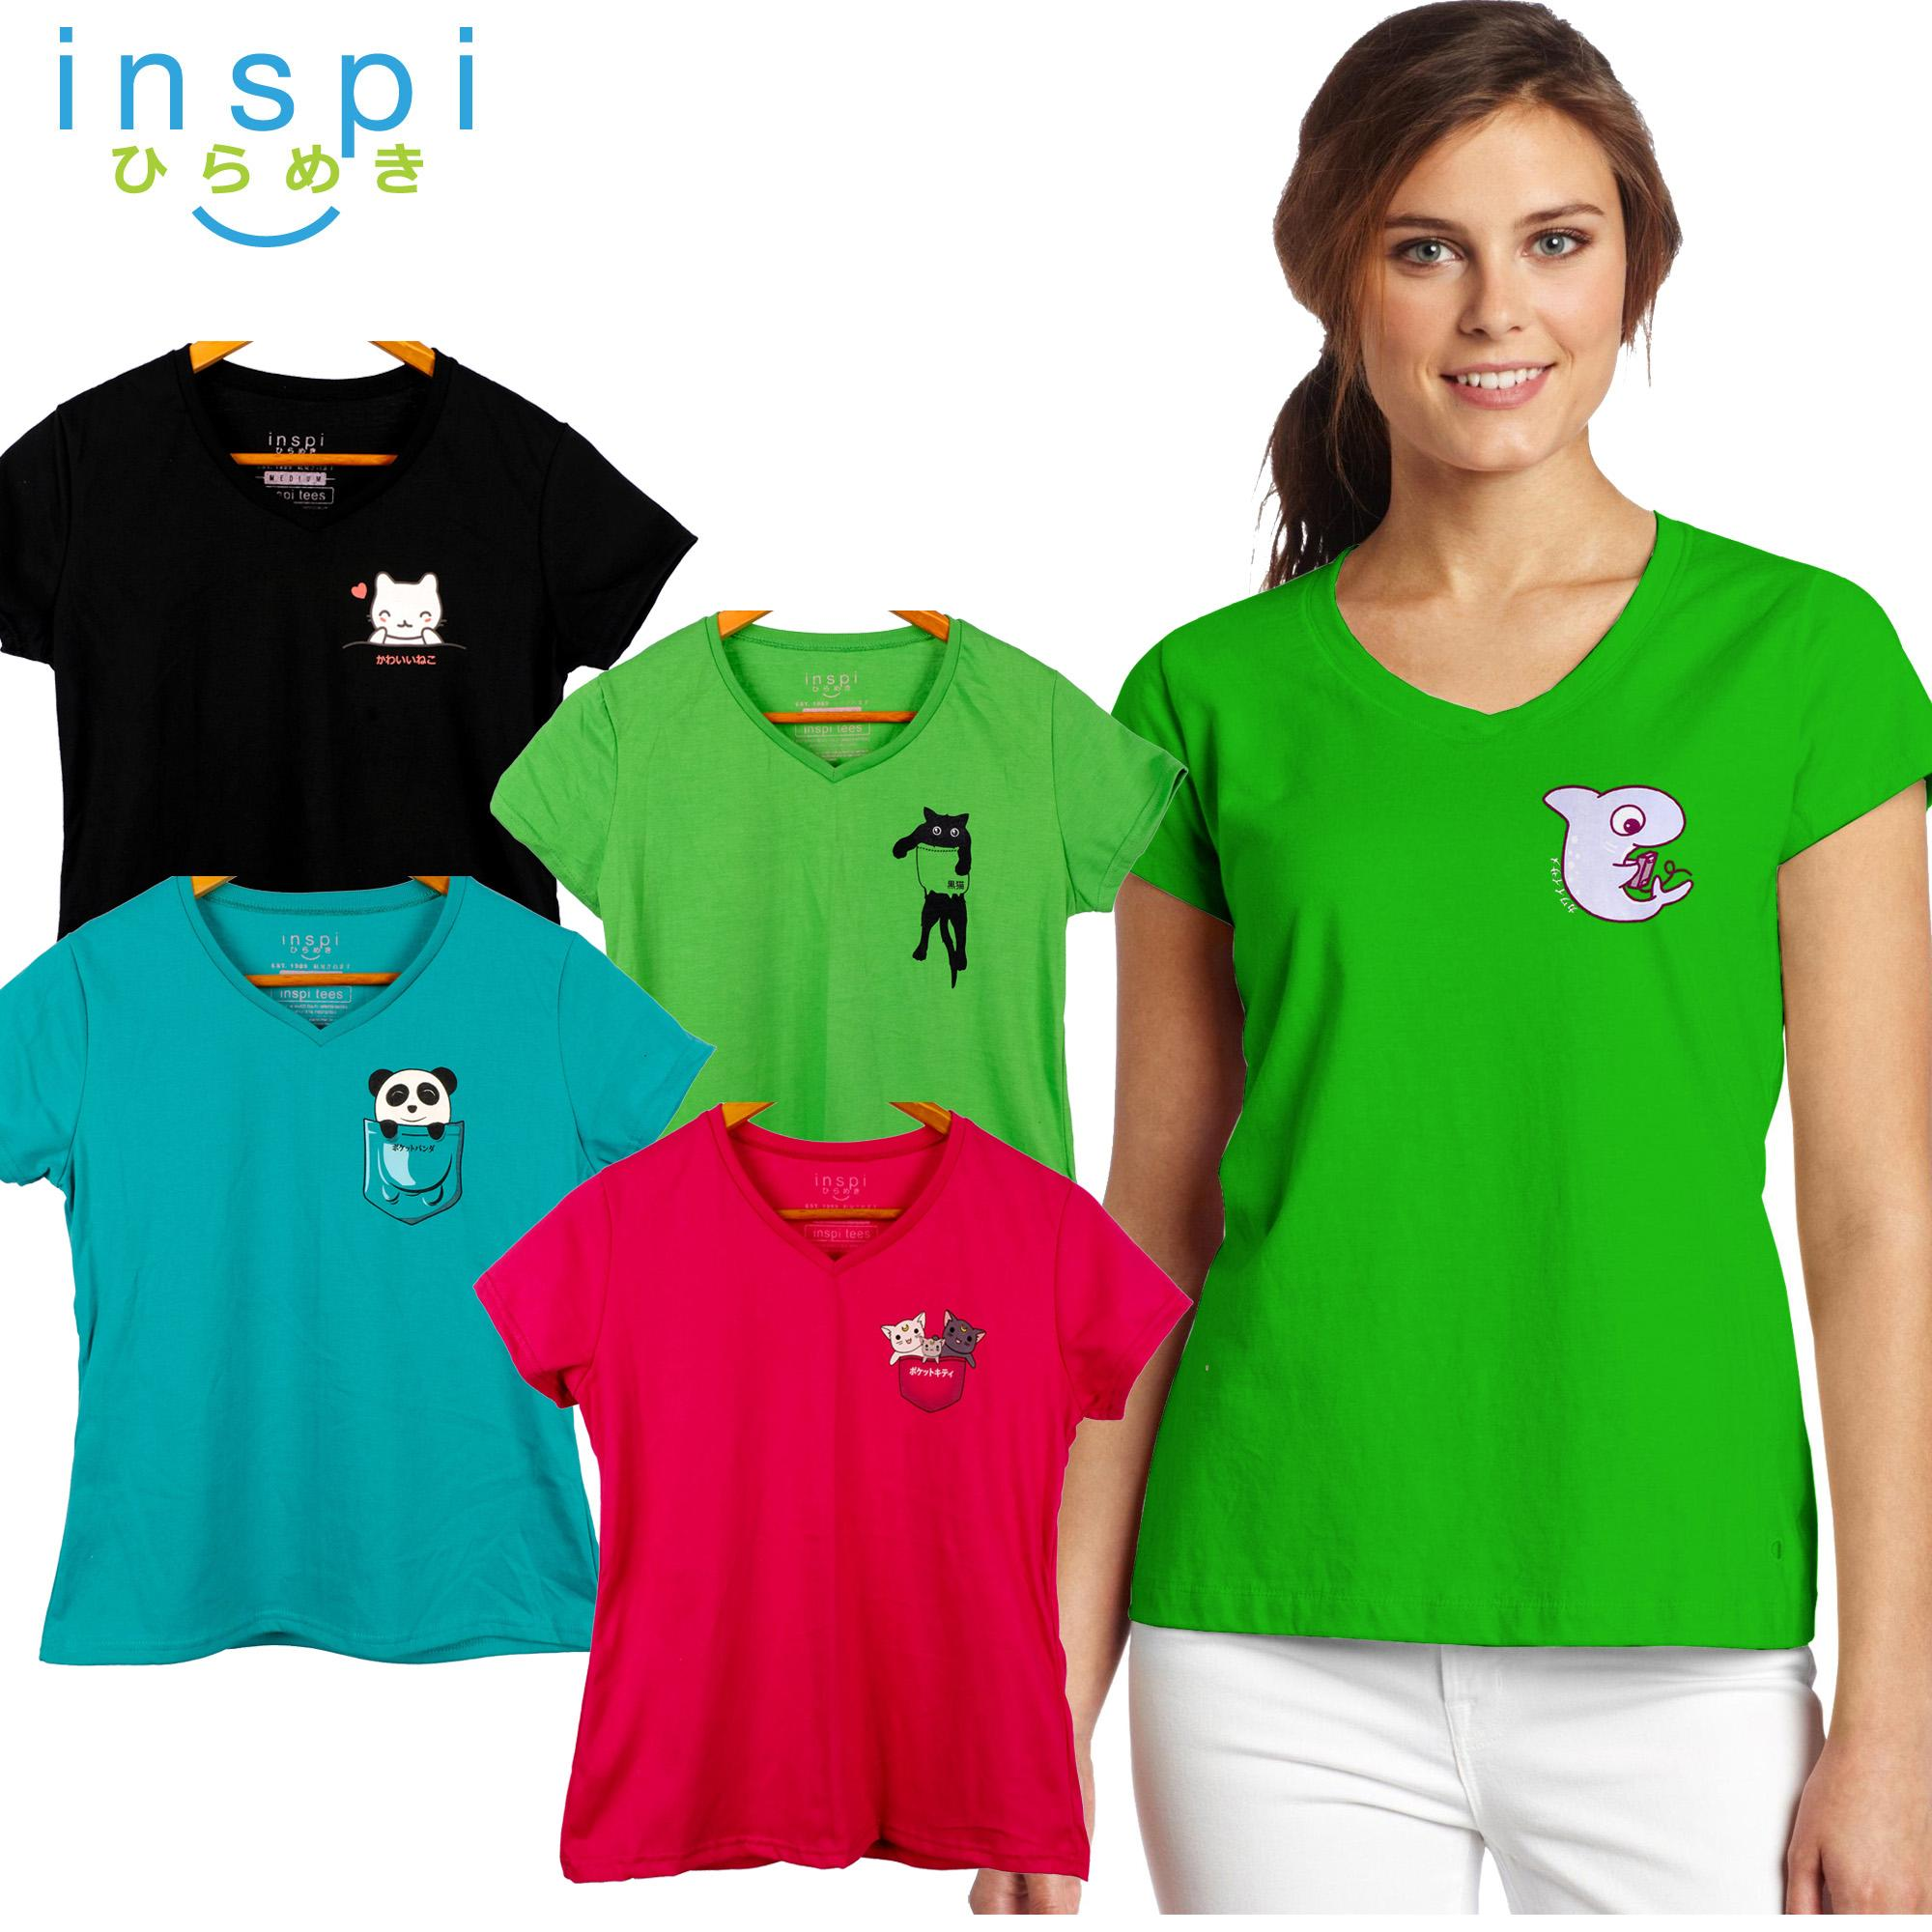 INSPI Tees Ladies Semi Fit Pocket Friends Collection tshirt printed graphic tee  t shirt shirts tshirts 8e236ef3871a